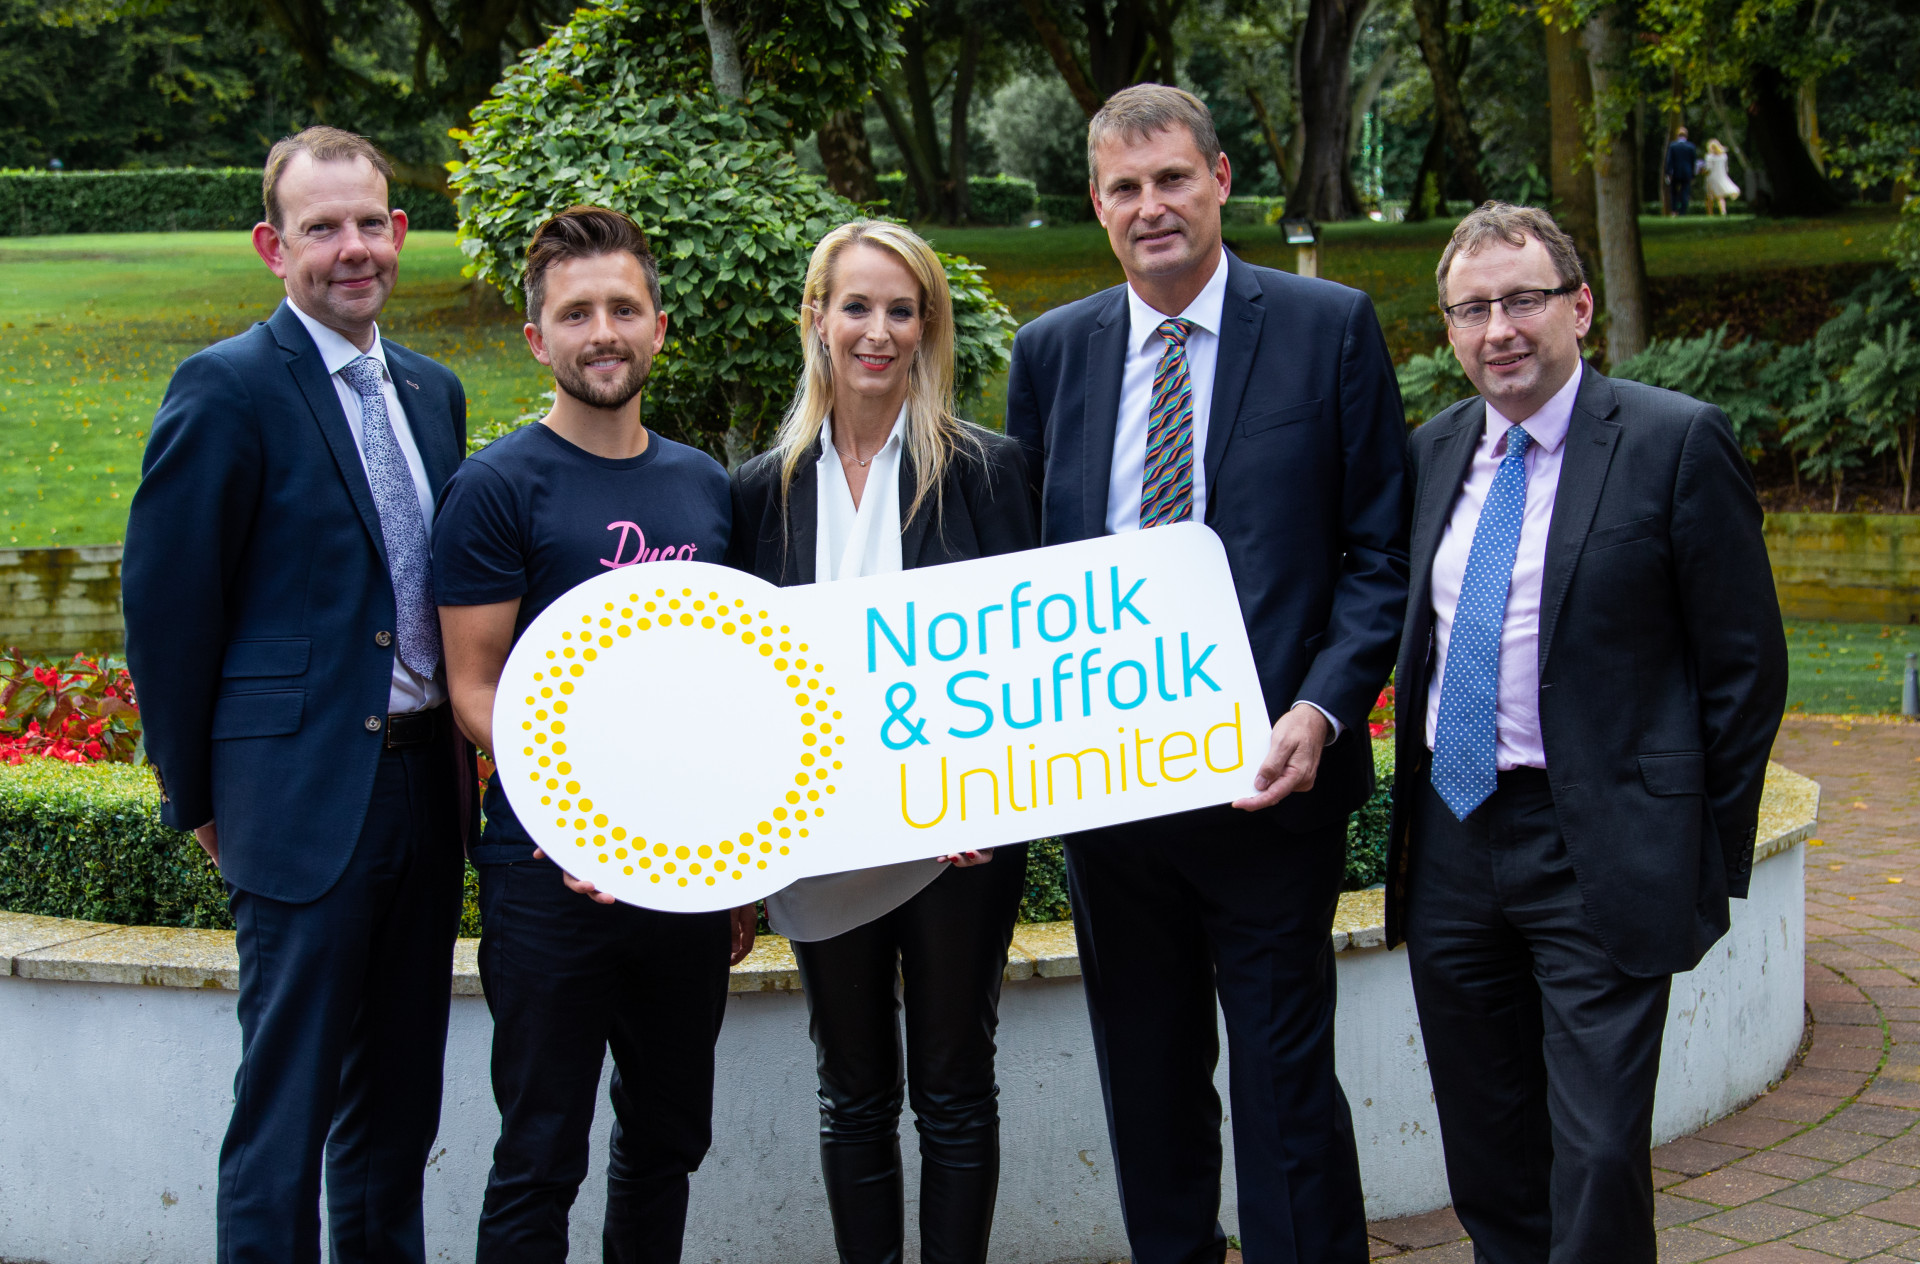 Norfolk and Suffolk Unlimited brand launch